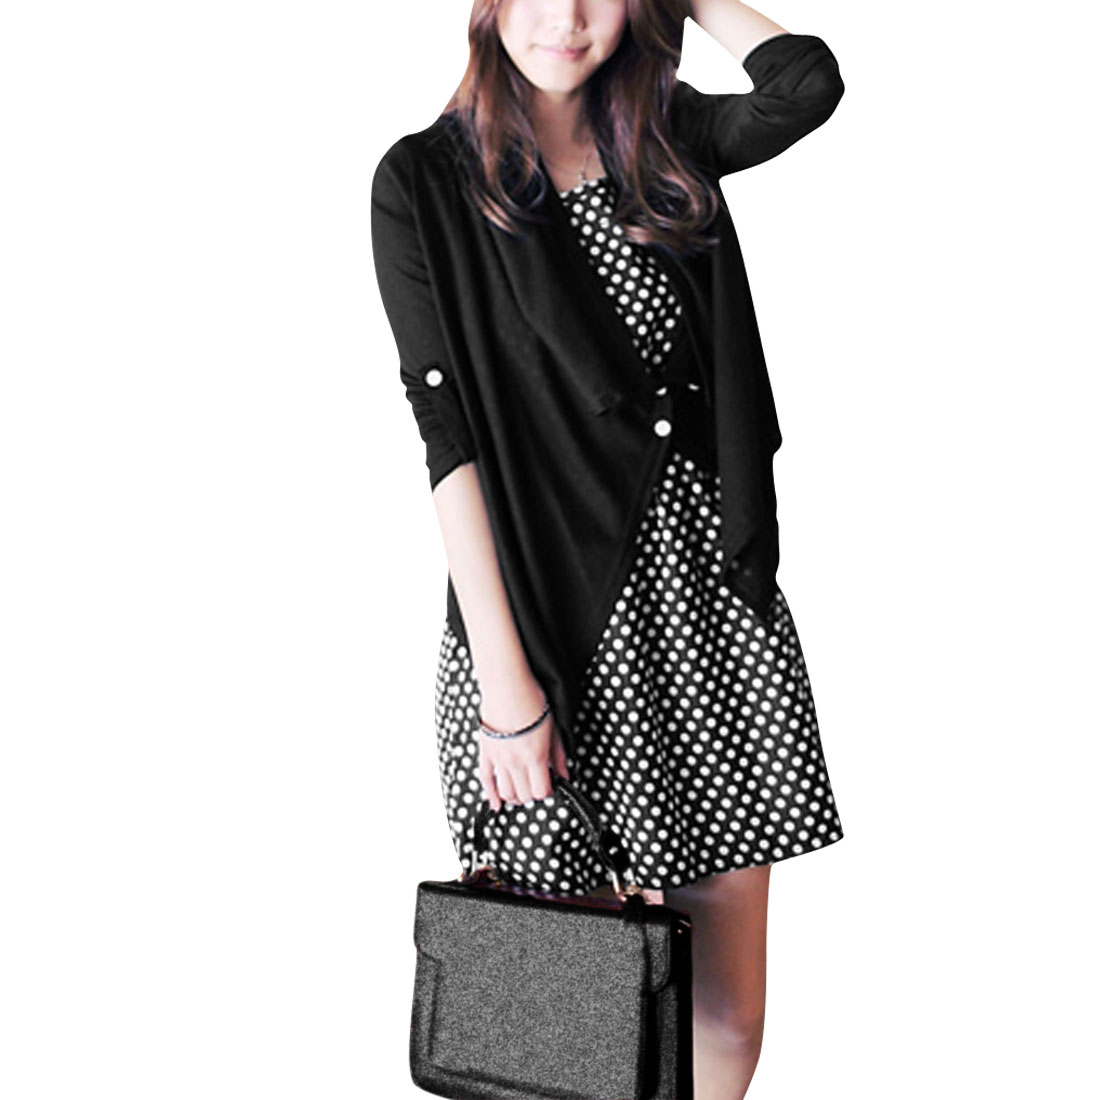 Women-Elastic-Waist-Pullover-Dress-w-Convertible-Sleeves-Coat